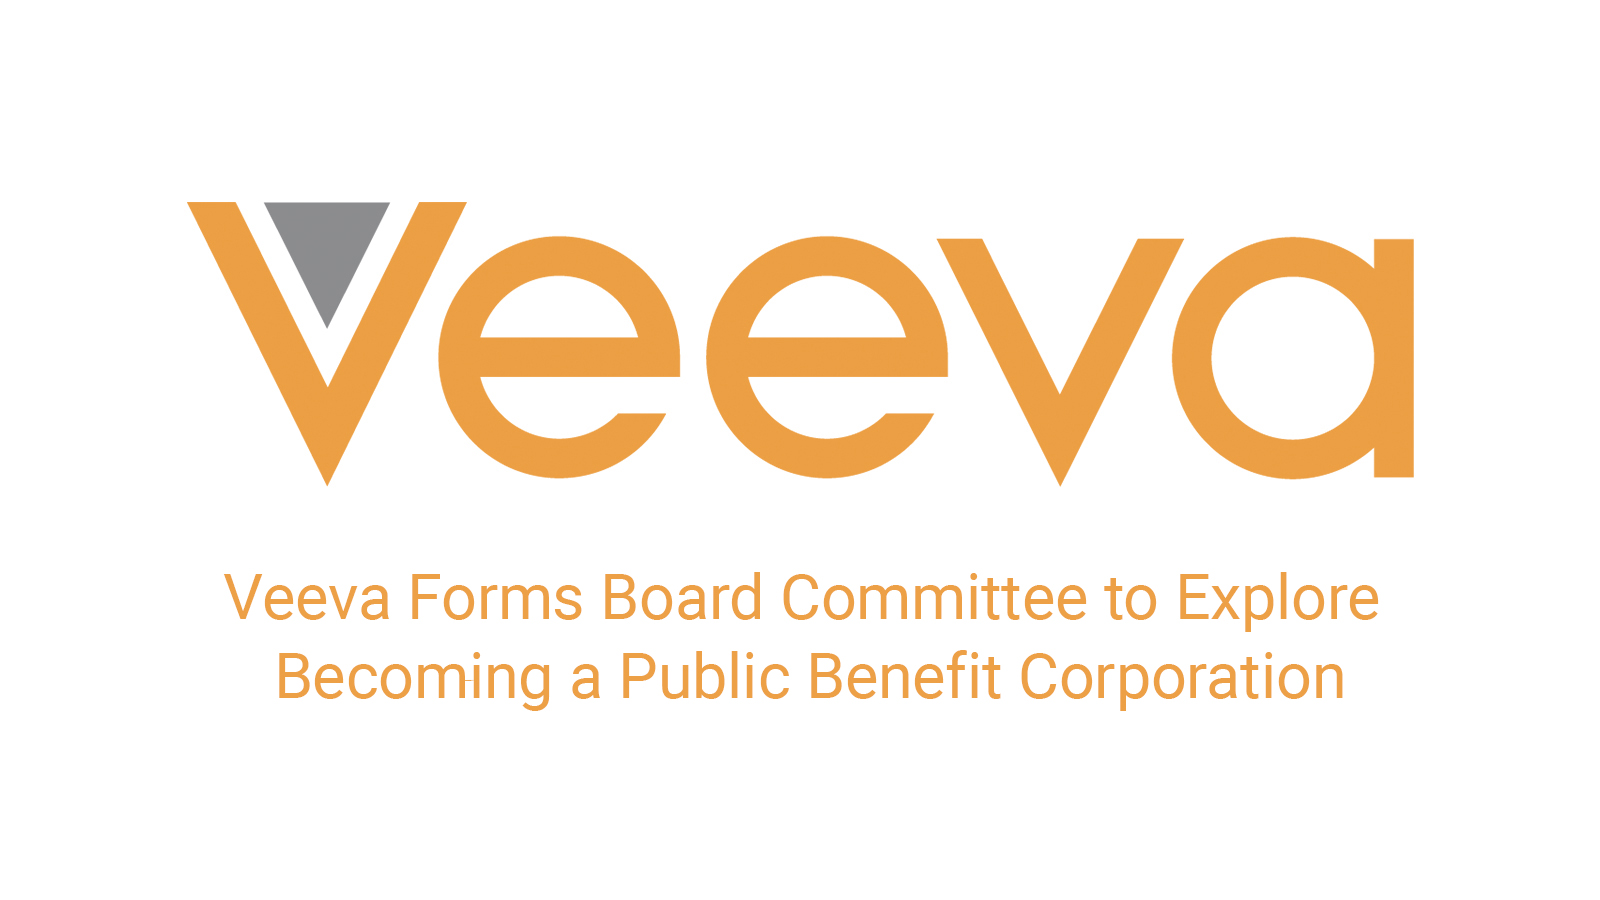 Veeva Forms Board Committee to Explore Becoming a Public Benefit Corporation